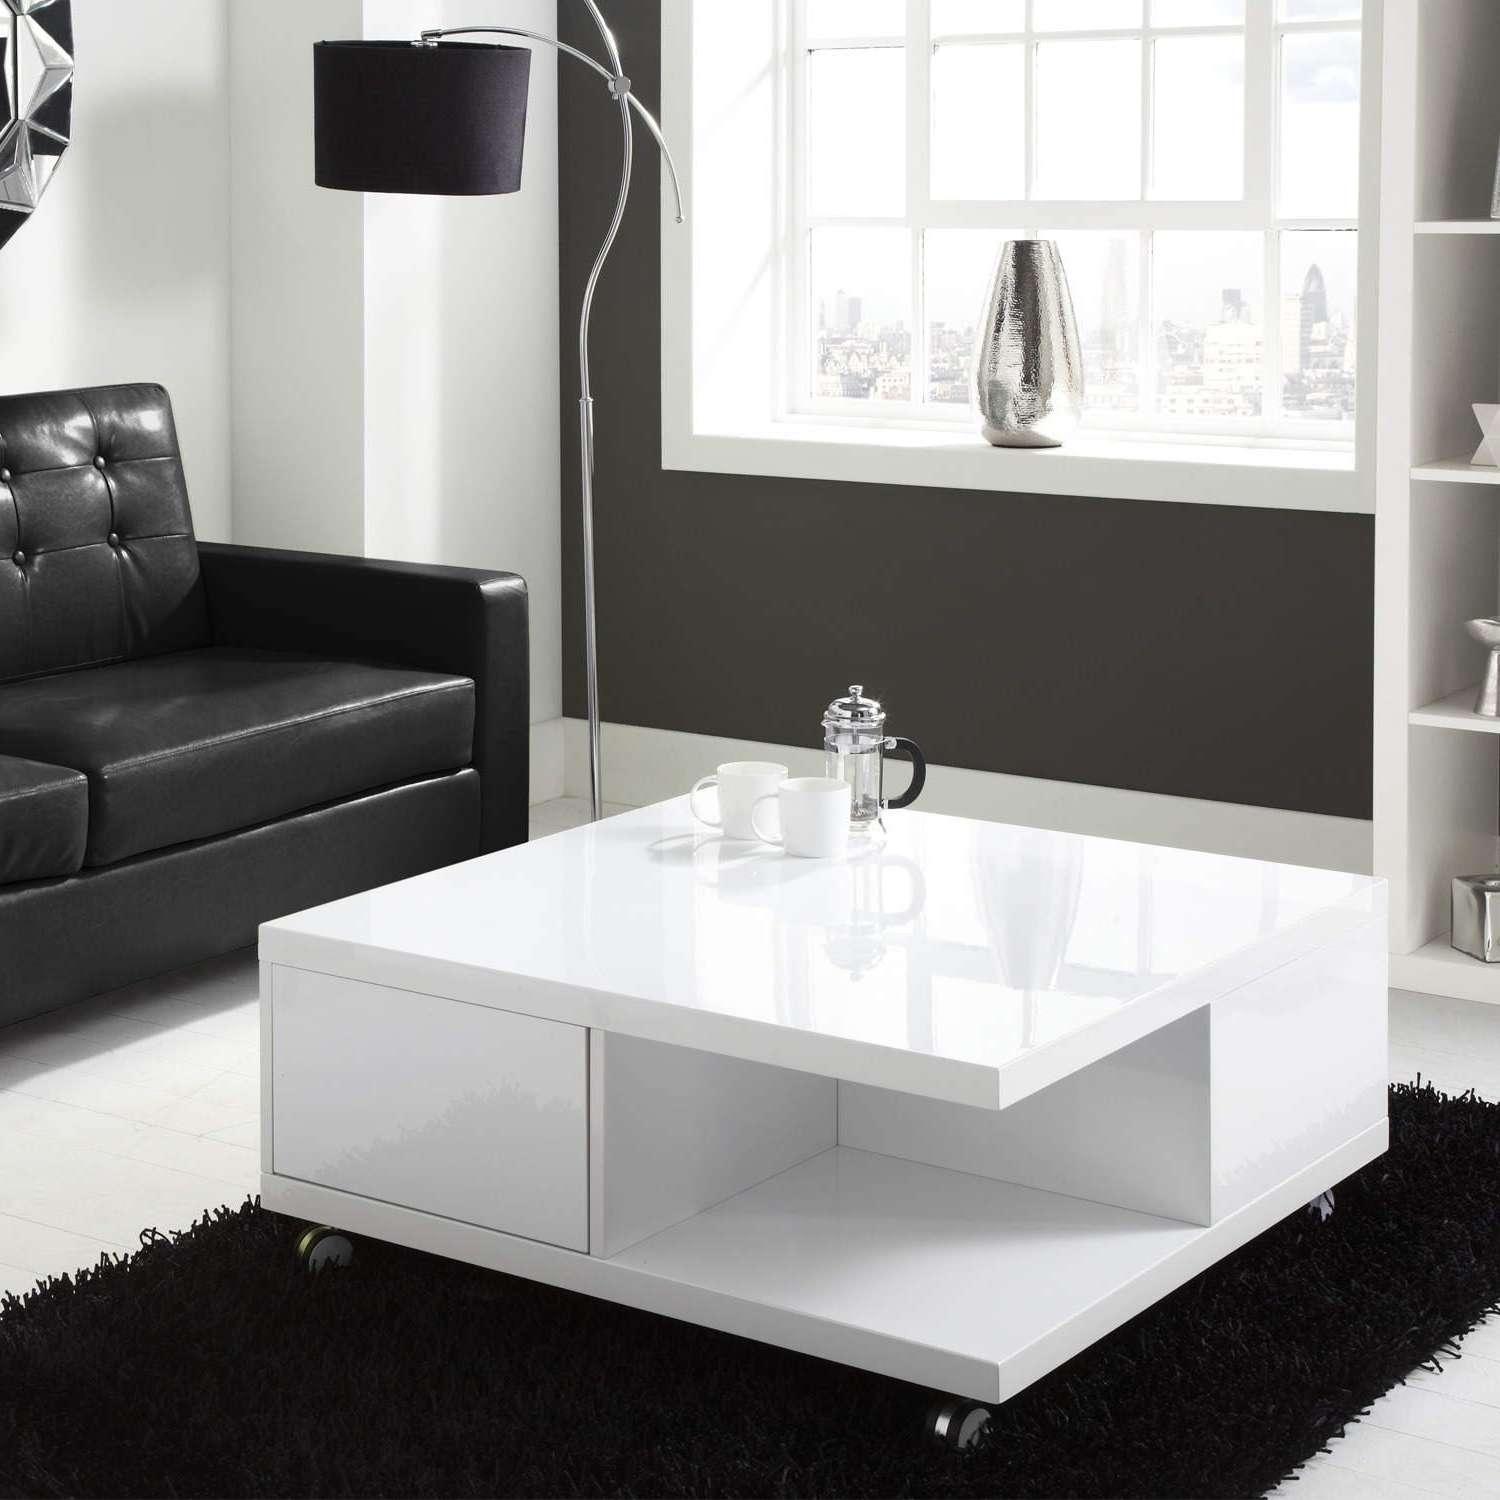 Most Popular High Gloss Coffee Tables For Coffee Tables : Storage Table High Gloss White Coffee With Drawers (View 14 of 20)